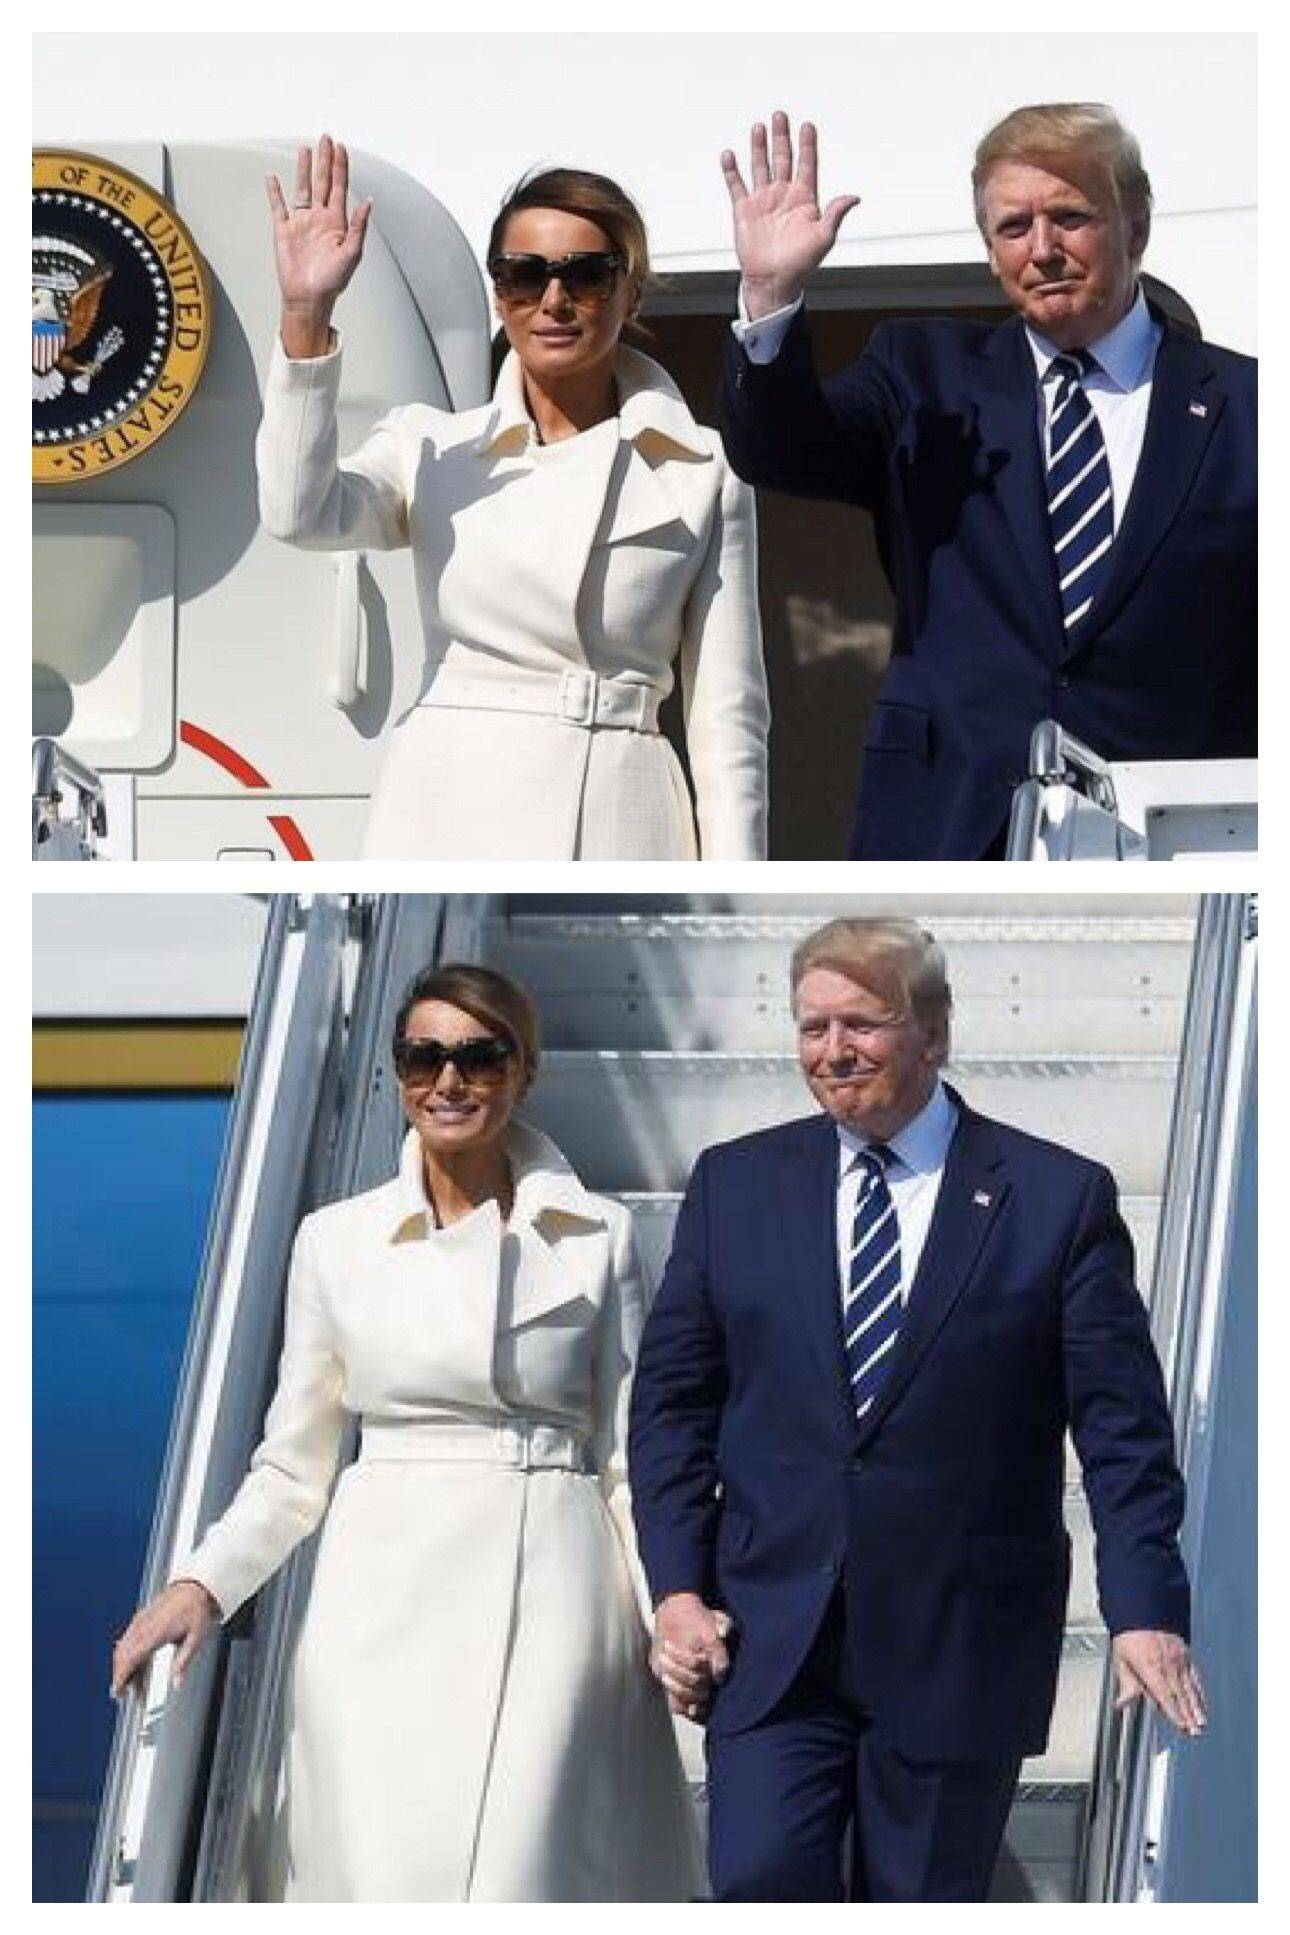 The First Lady Best Of President & First Lady Melania Trump Arrive In Ireland 6 5